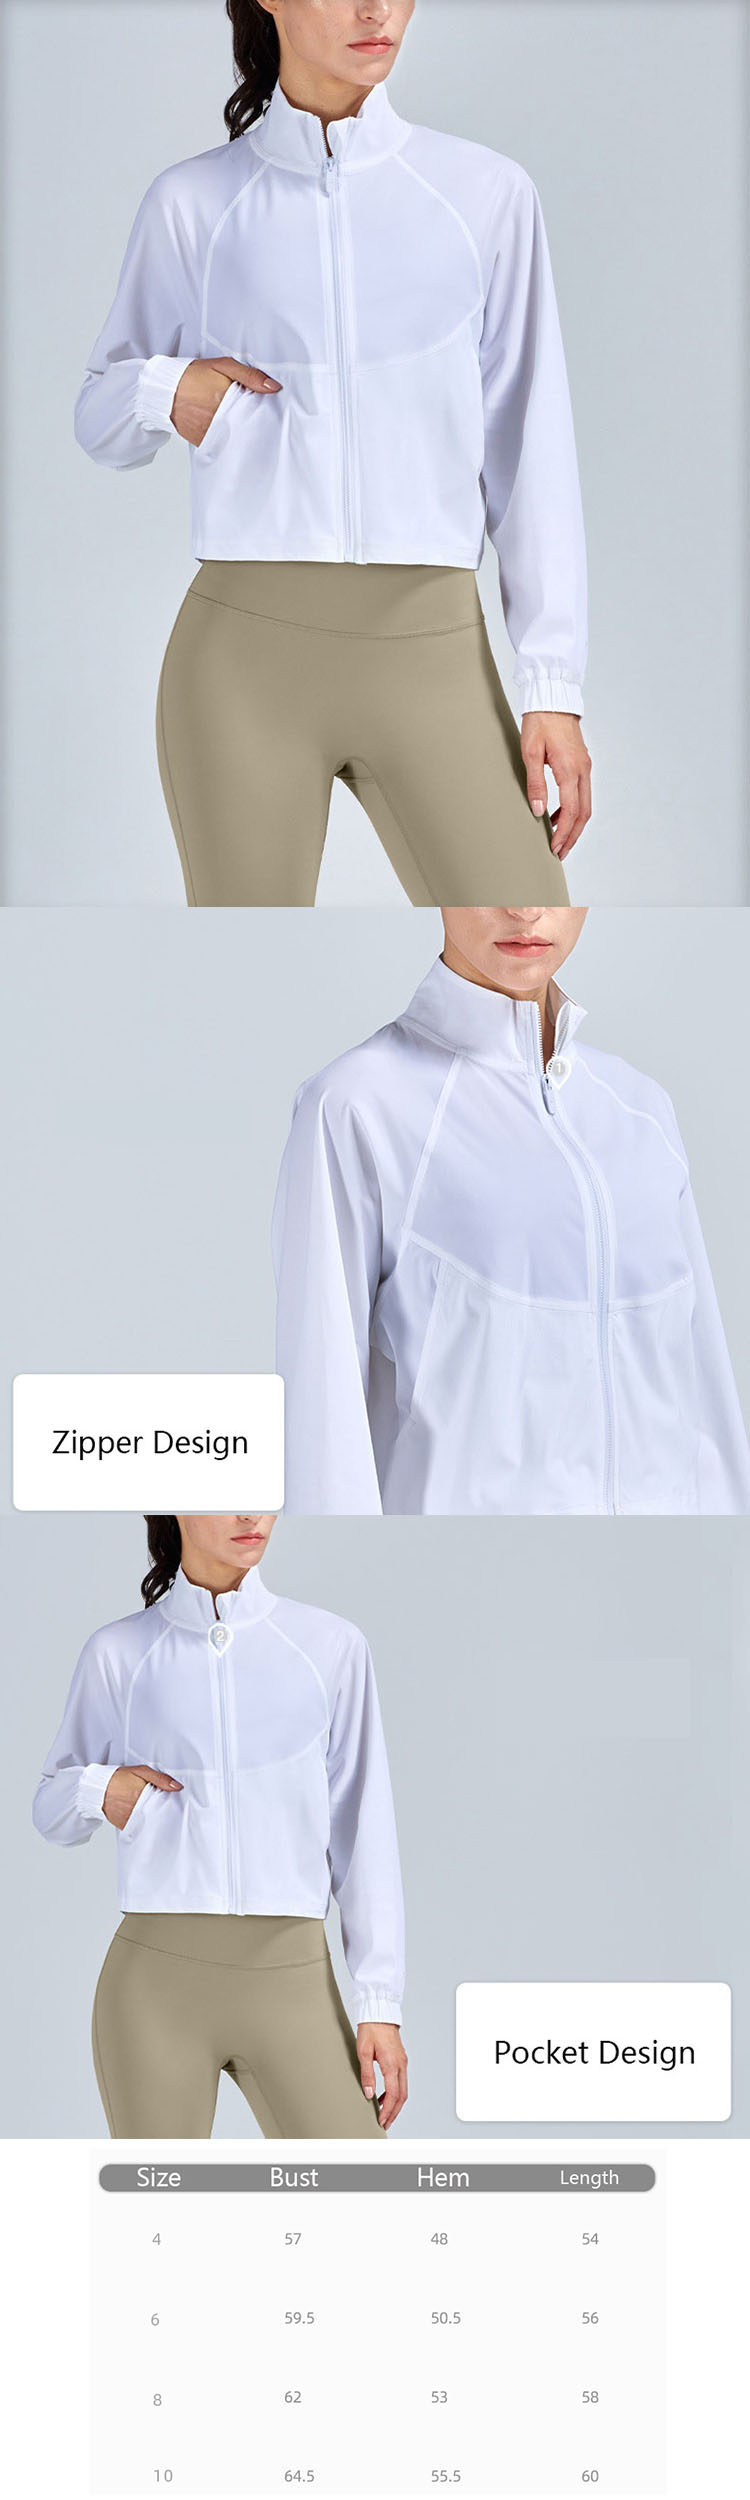 Womens sports coat is suitable for running